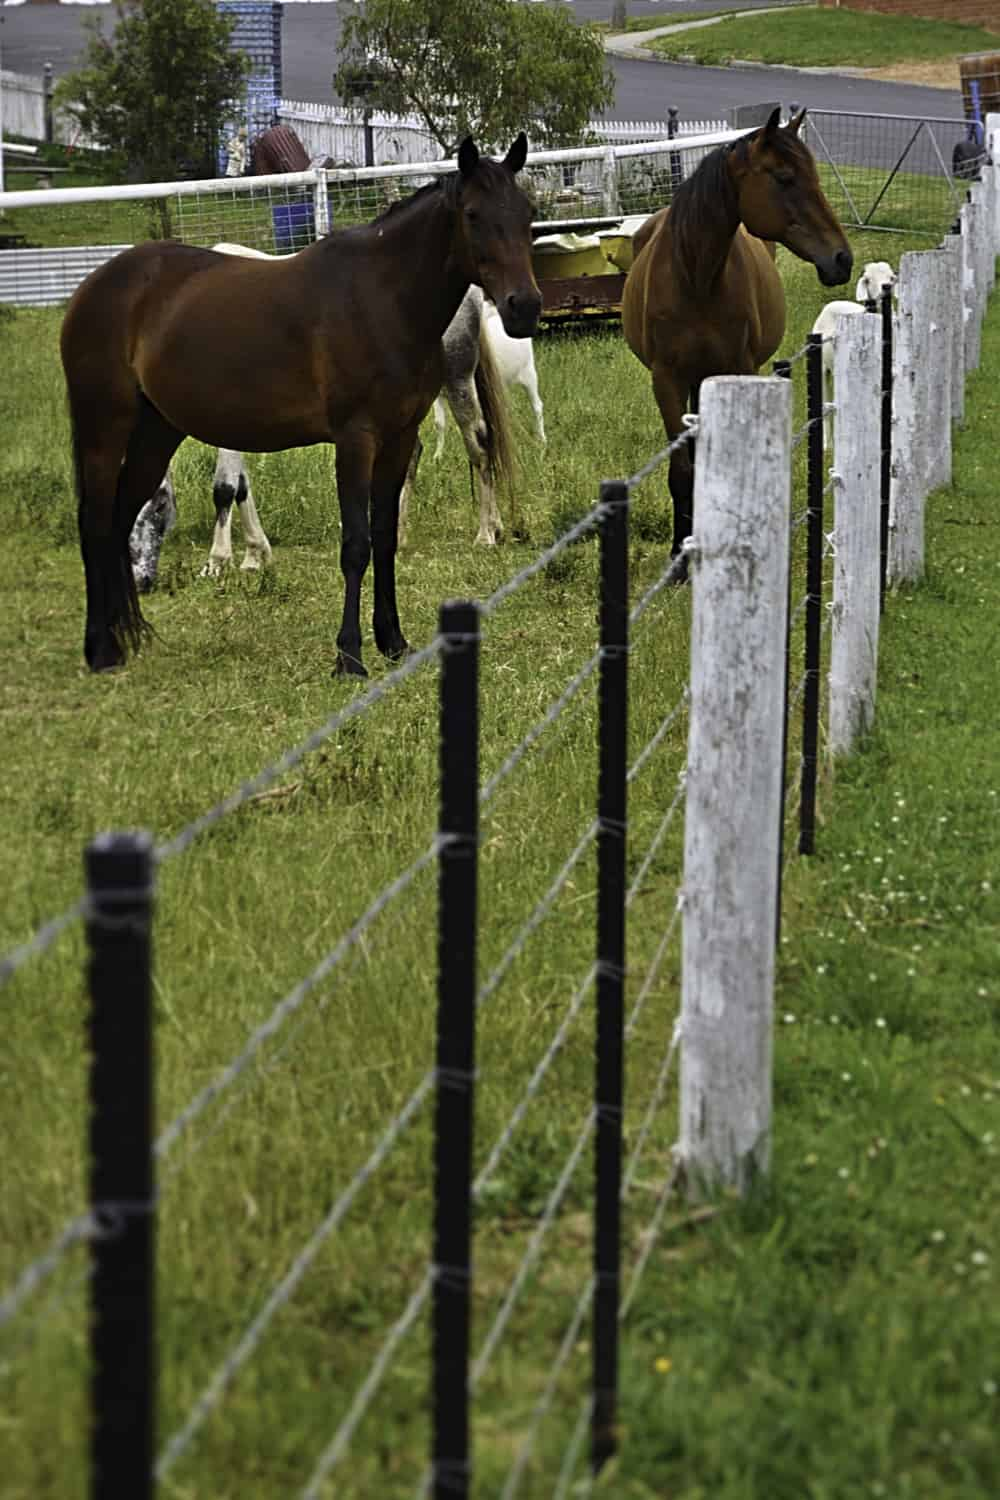 Post and wire fencing